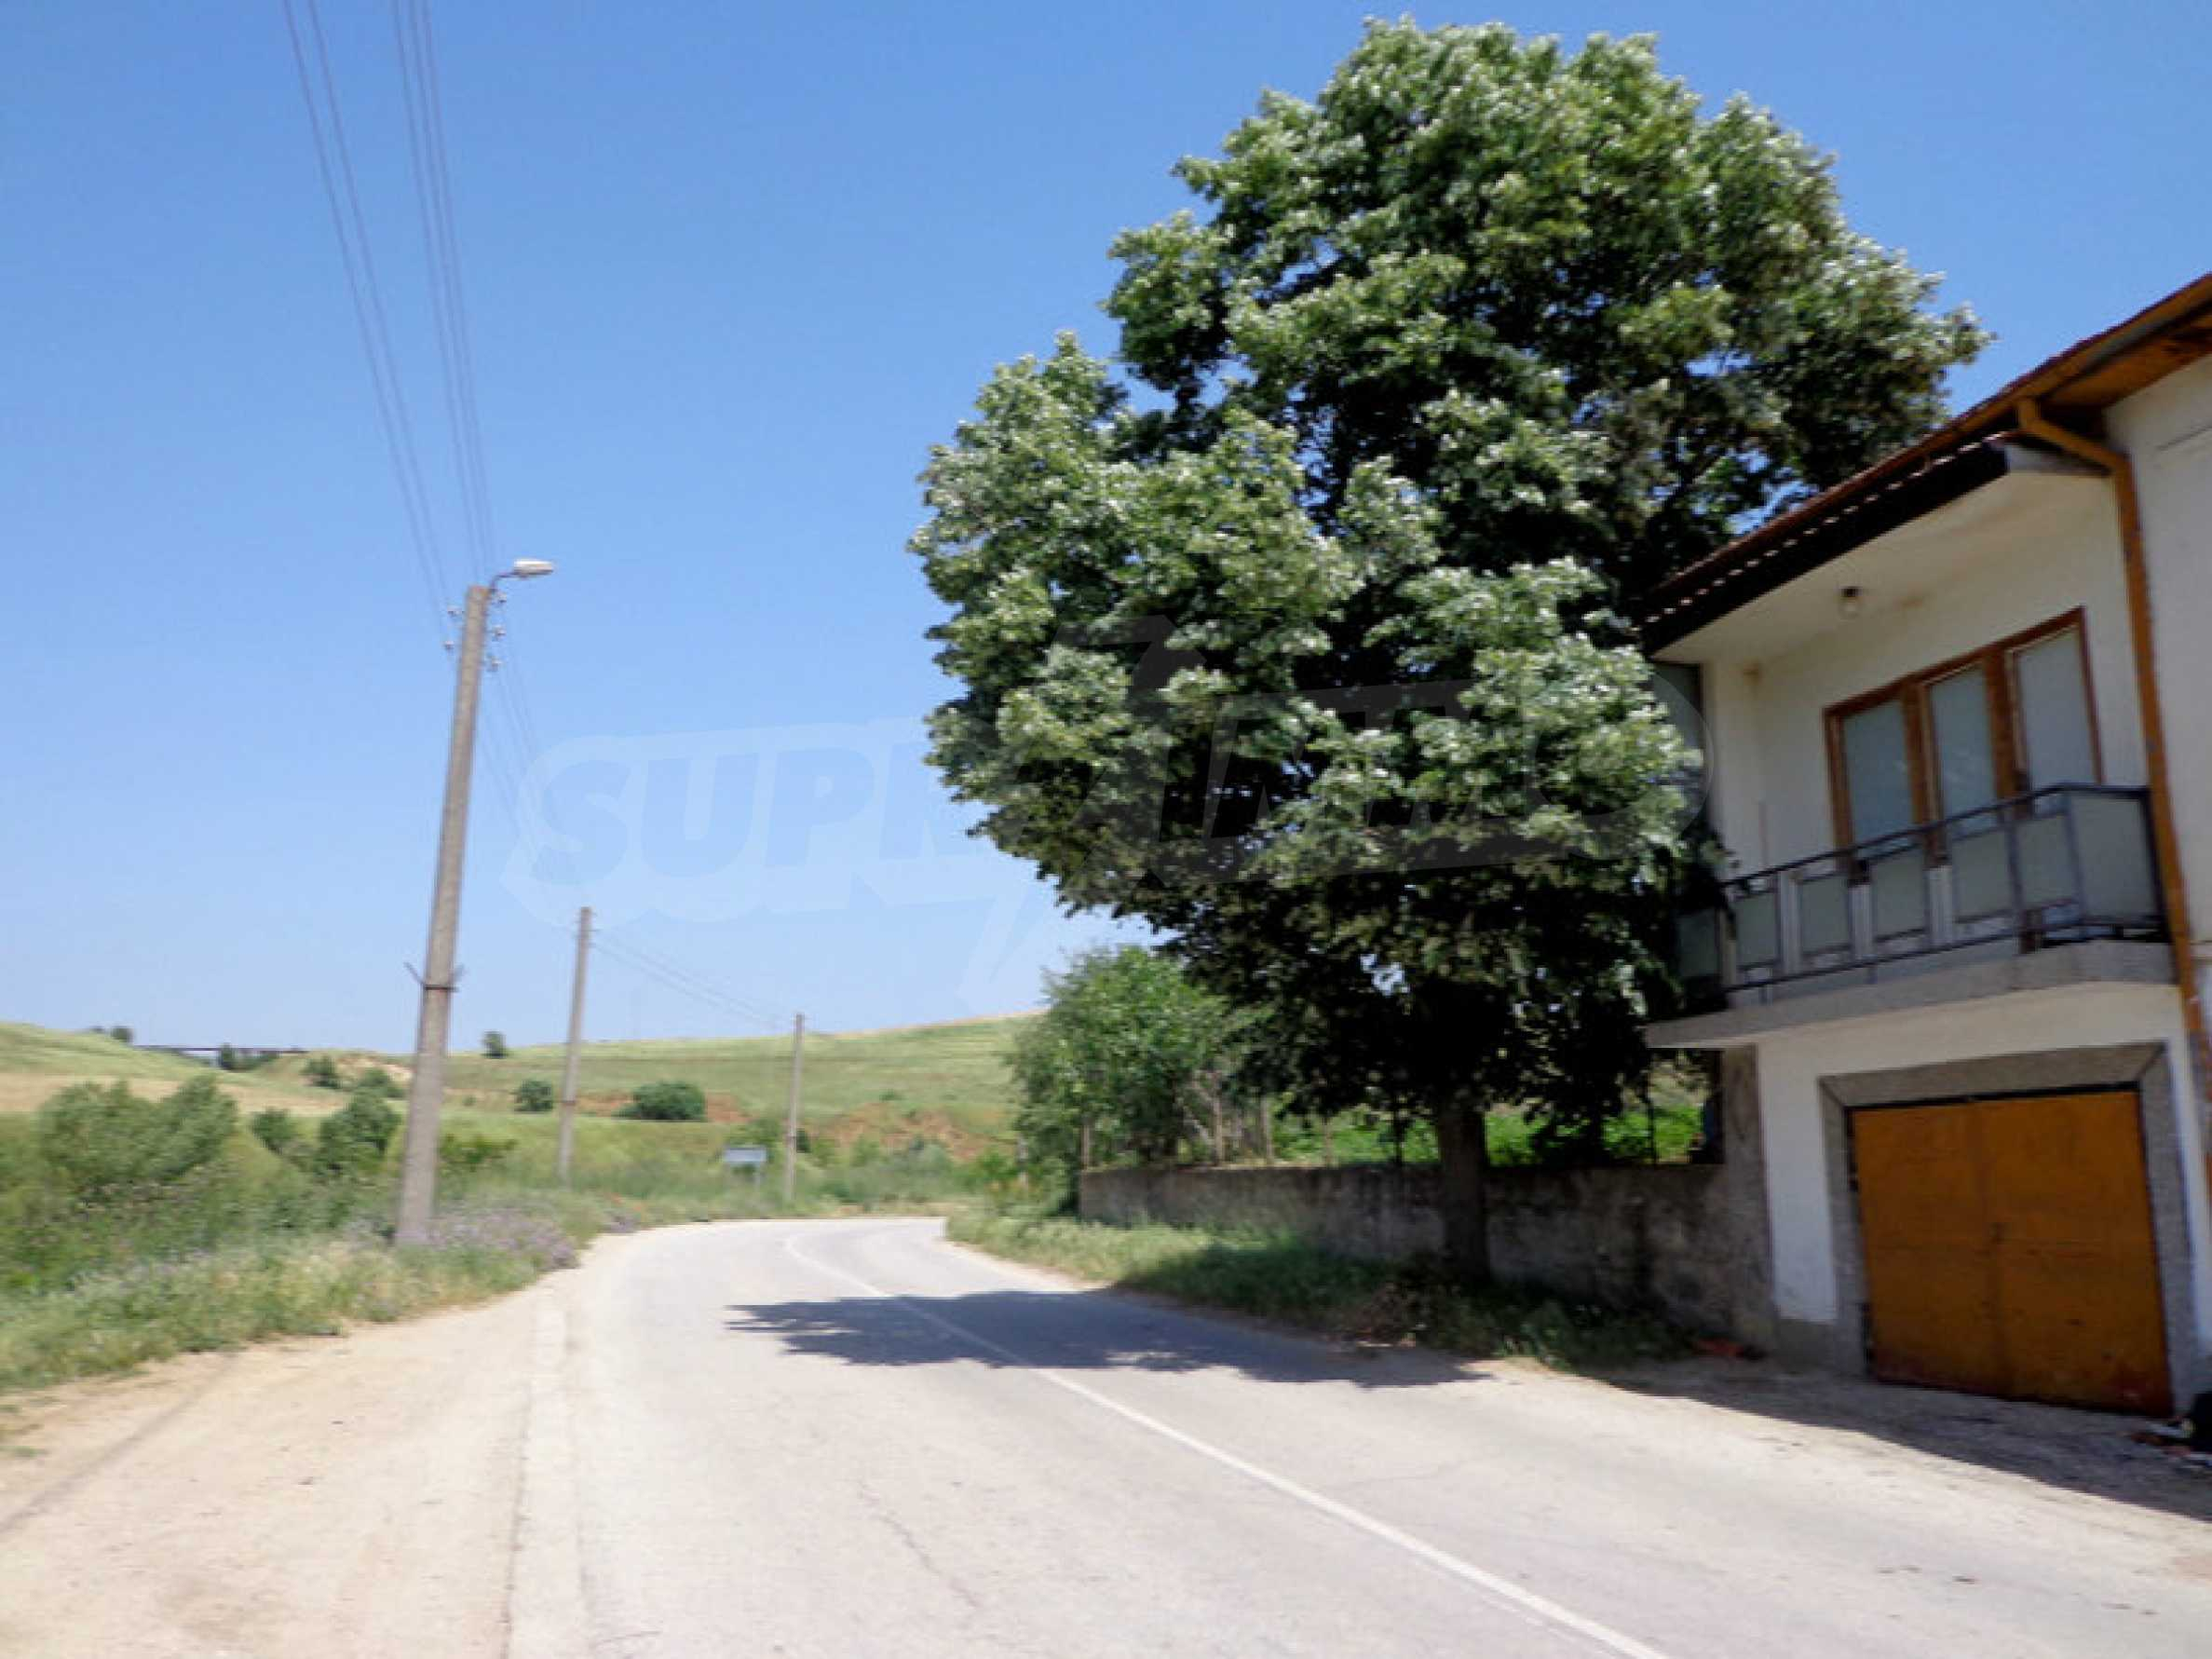 Land for private house near mineral bath 7